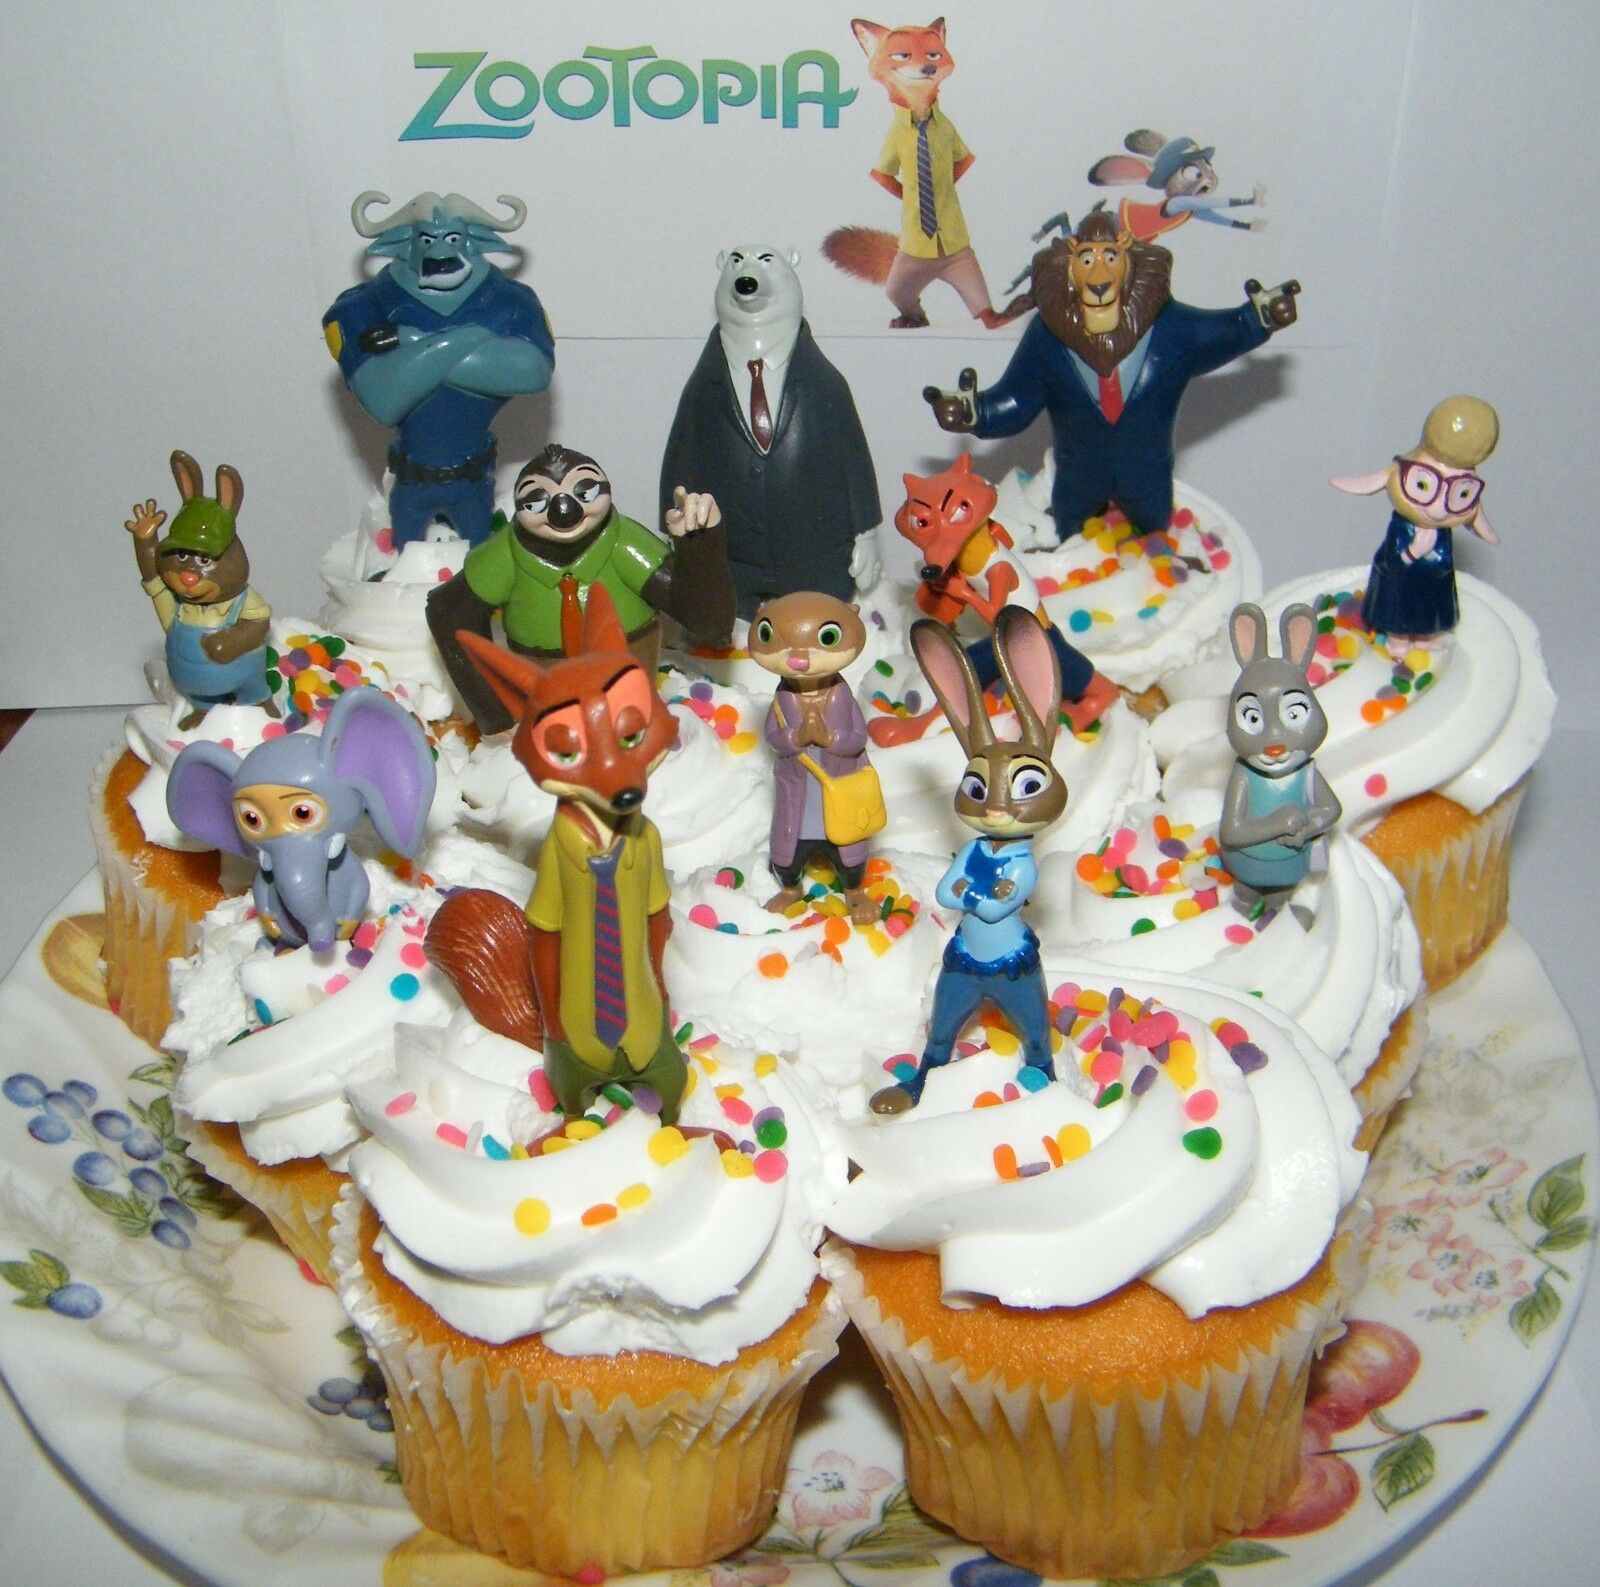 disney wedding cake toppers australia disney zootopia deluxe cake toppers set of 13 figures 13591